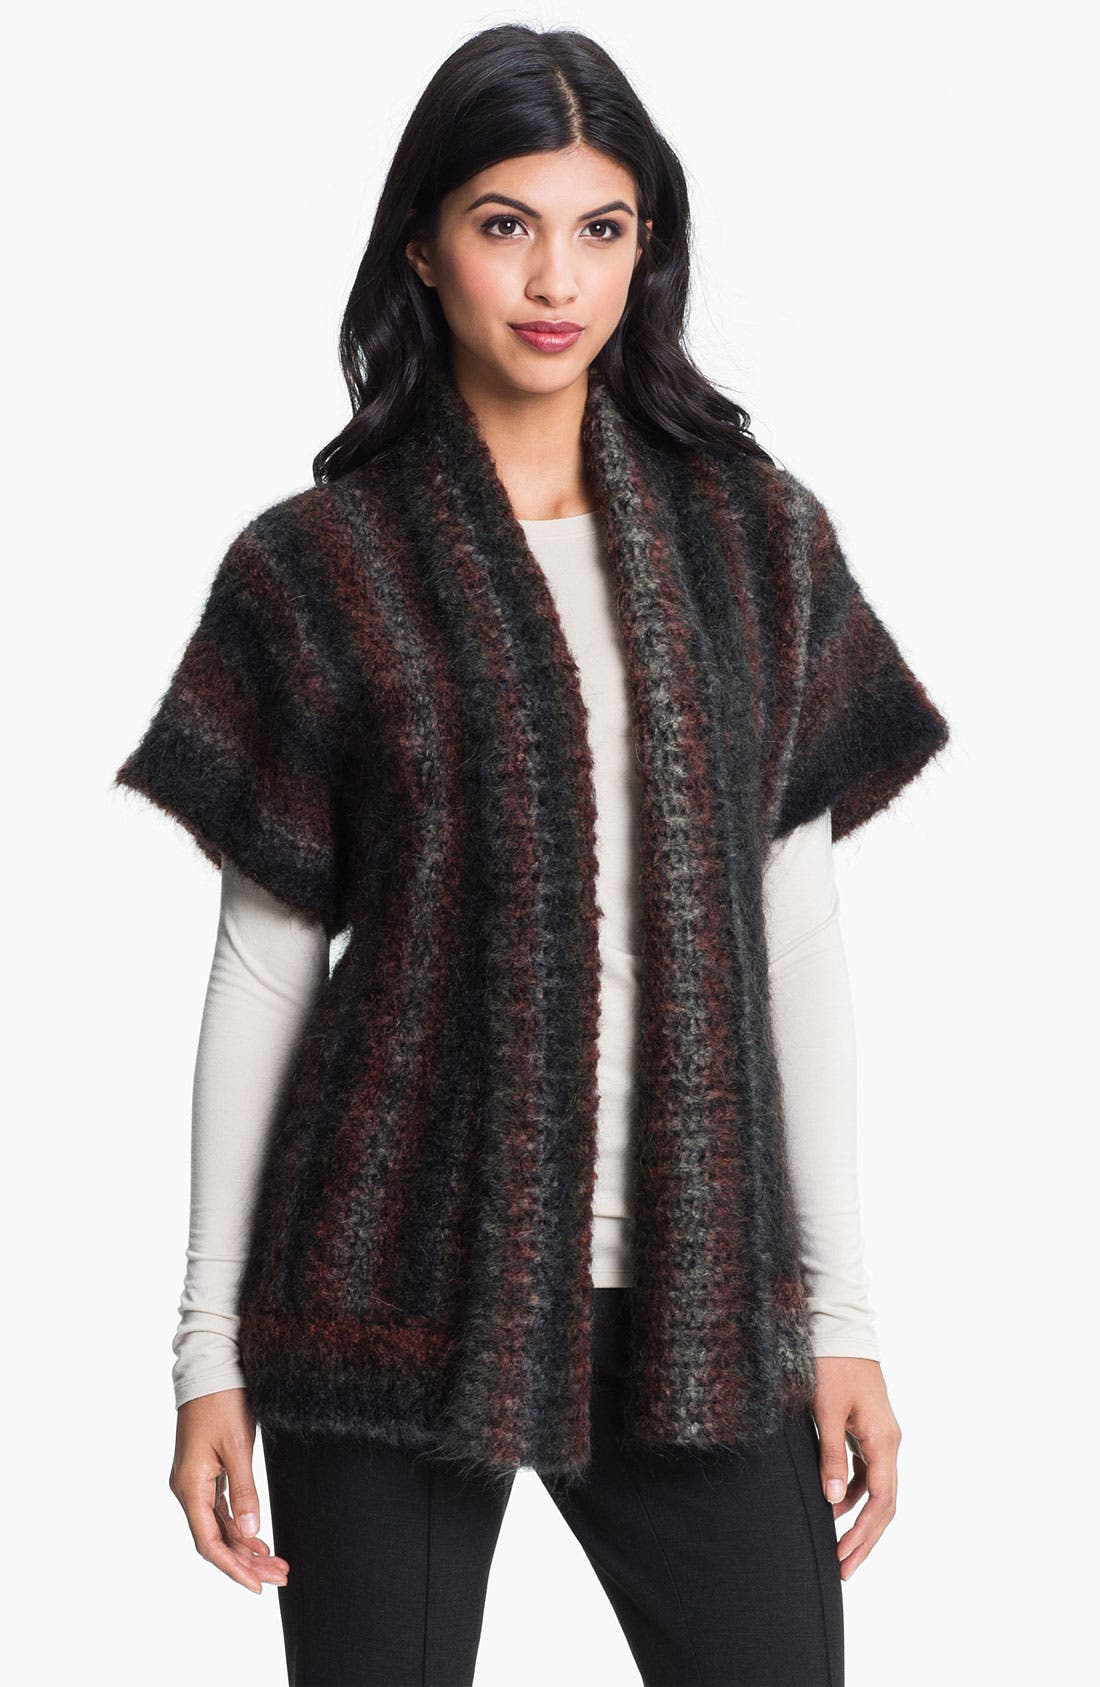 Alternate Image 1 Selected - Nordstrom Collection 'Bizet' Open Cardigan